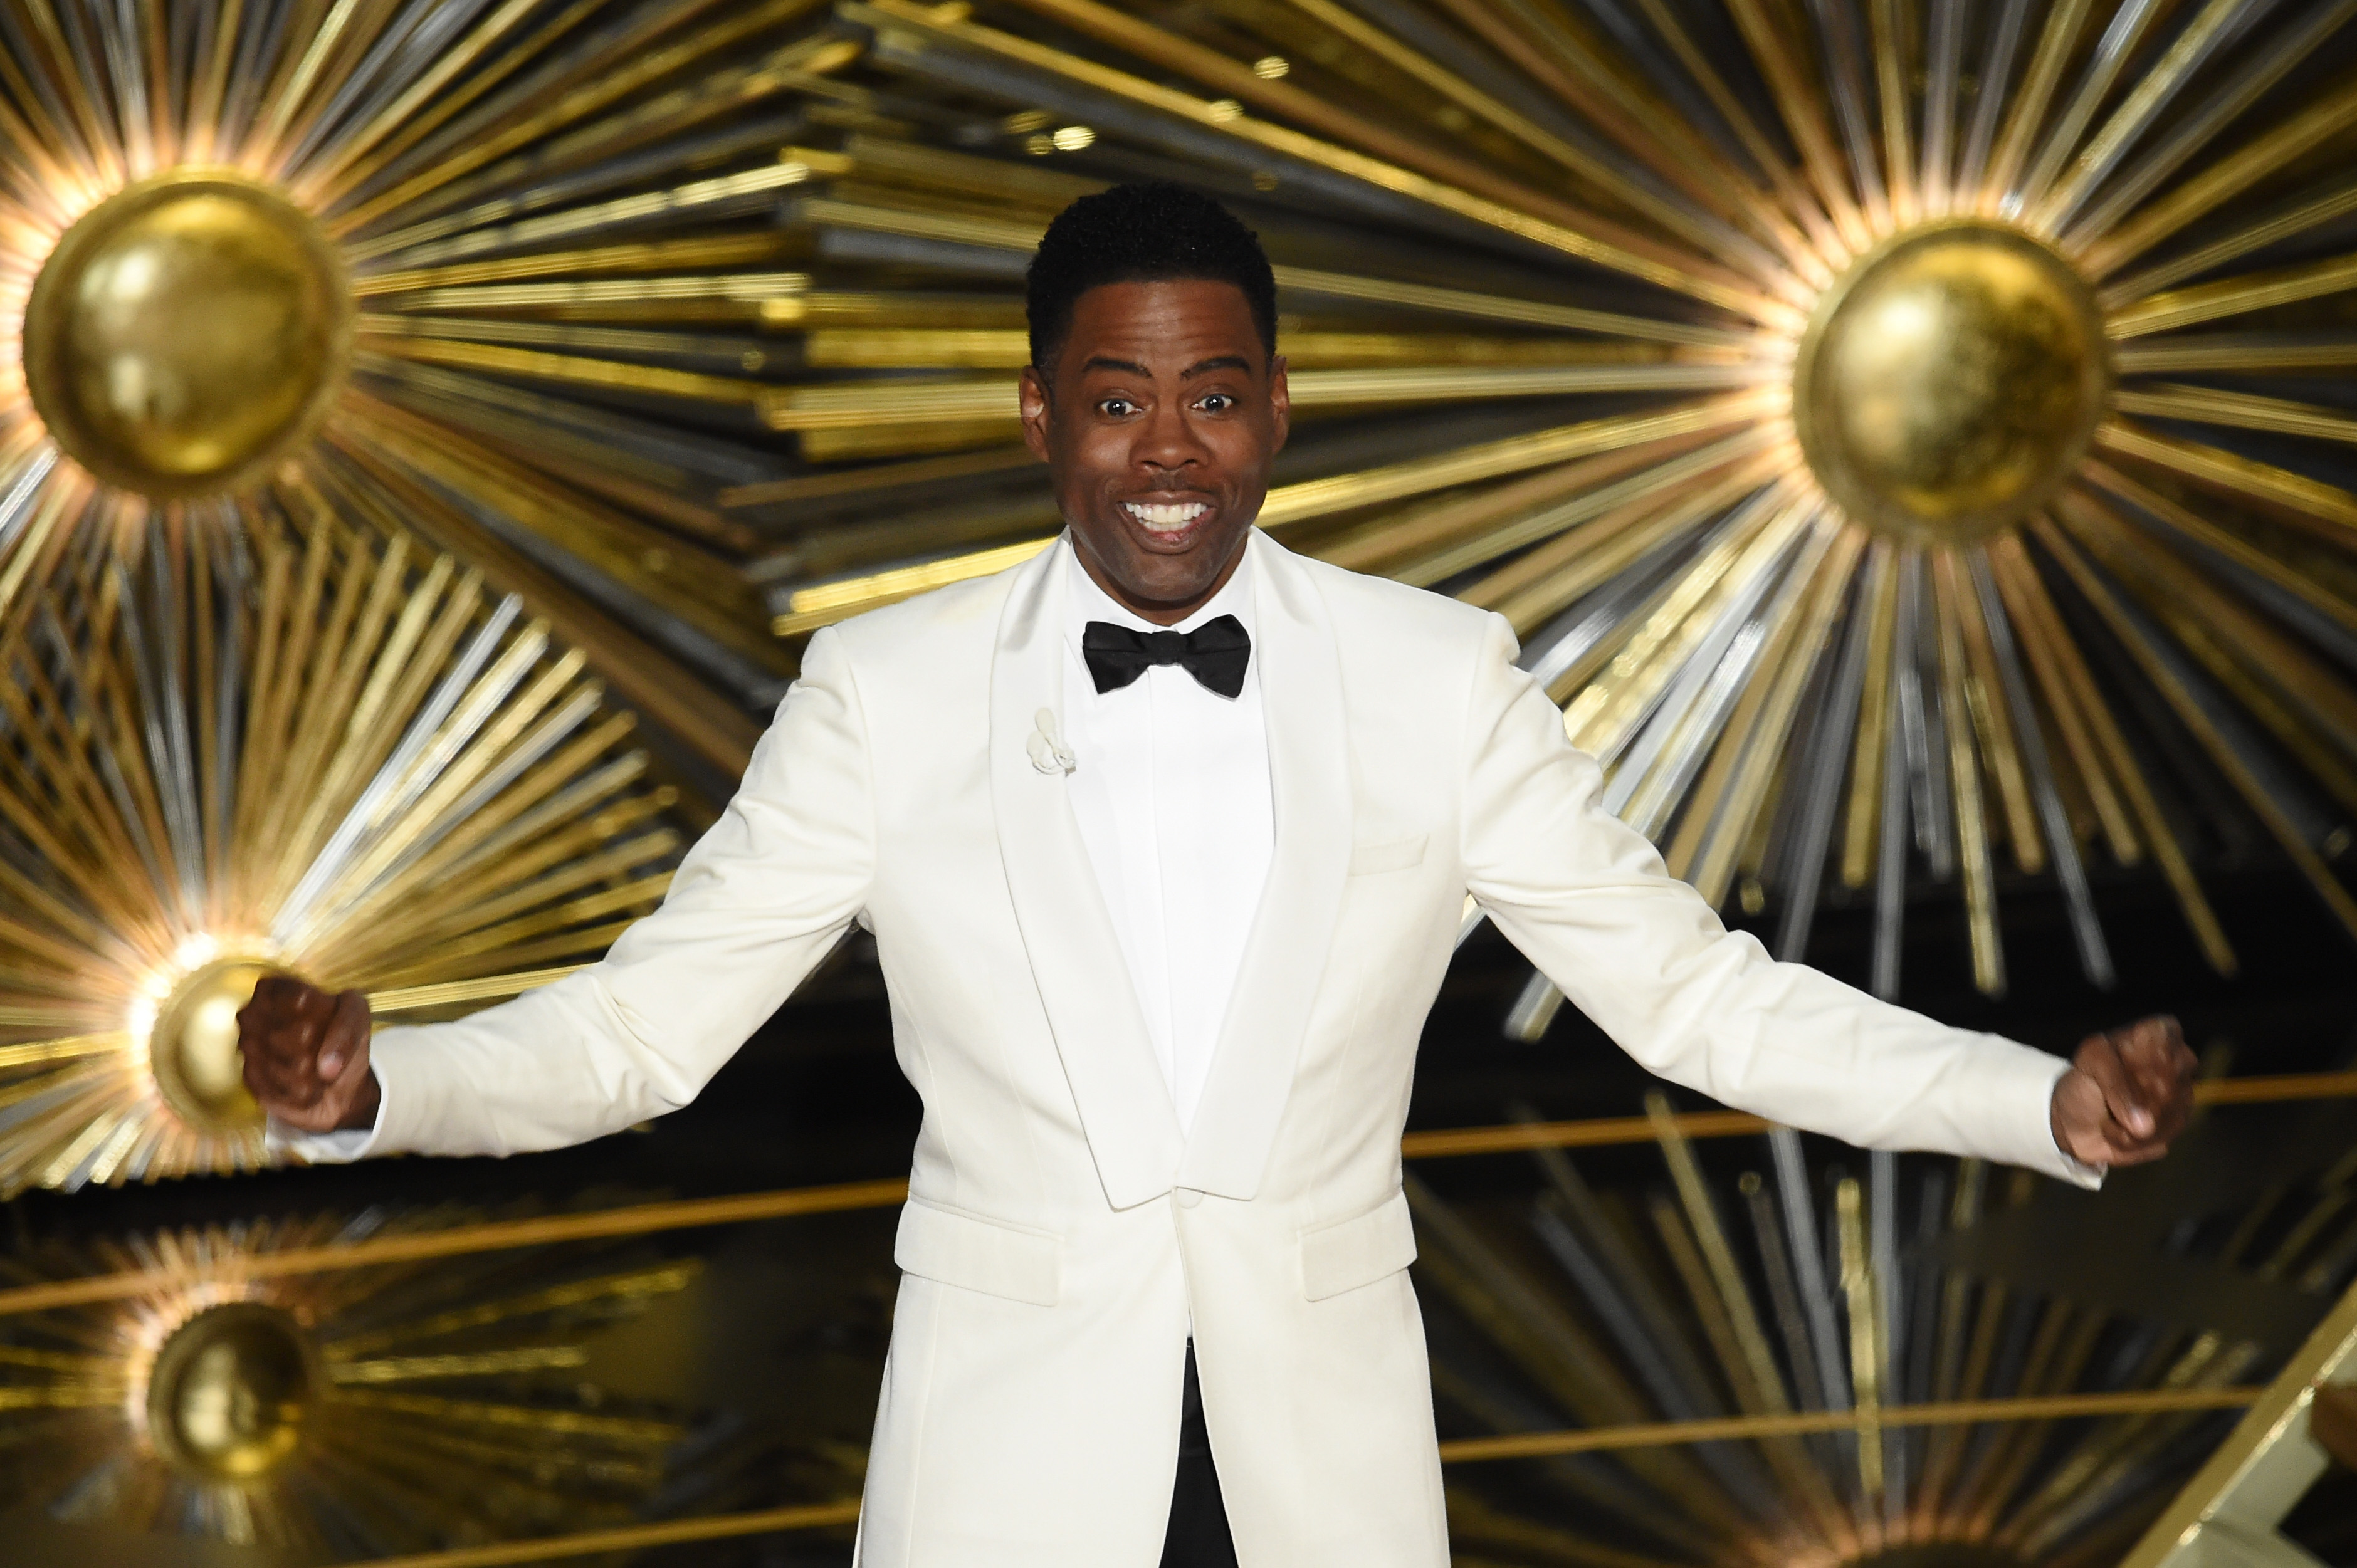 Host Chris Rock speaks onstage during the 88th Annual Academy Awards at the Dolby Theatre in California.